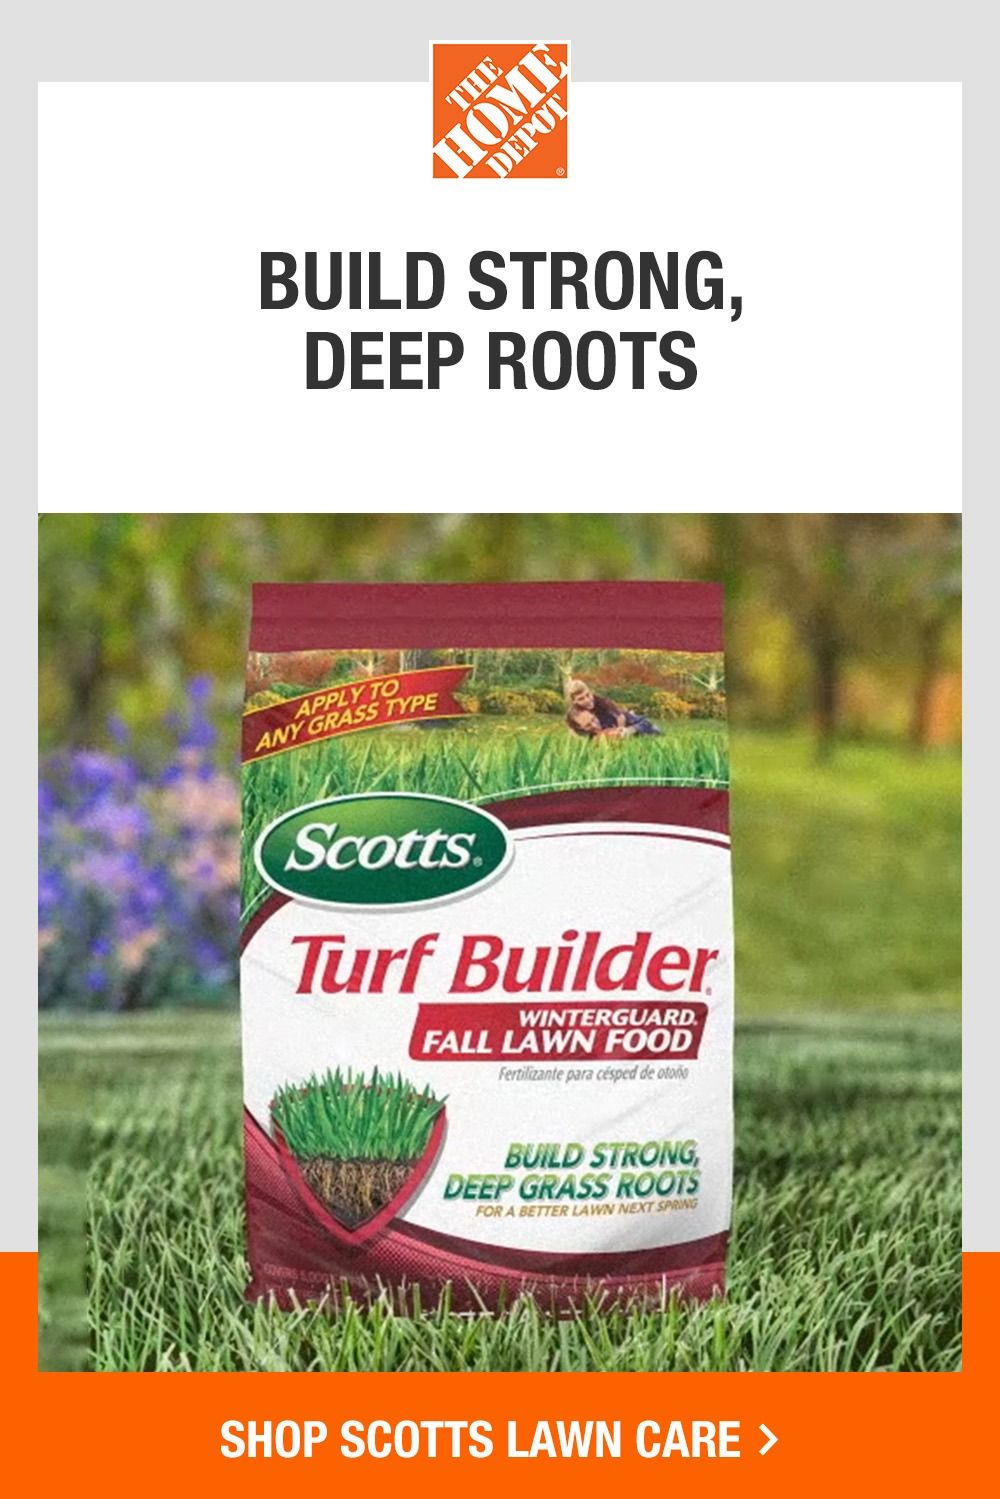 Grow A Better Lawn With Scotts From The Home Depot Scott Lawn Care Fall Lawn Care Spring Lawn Care